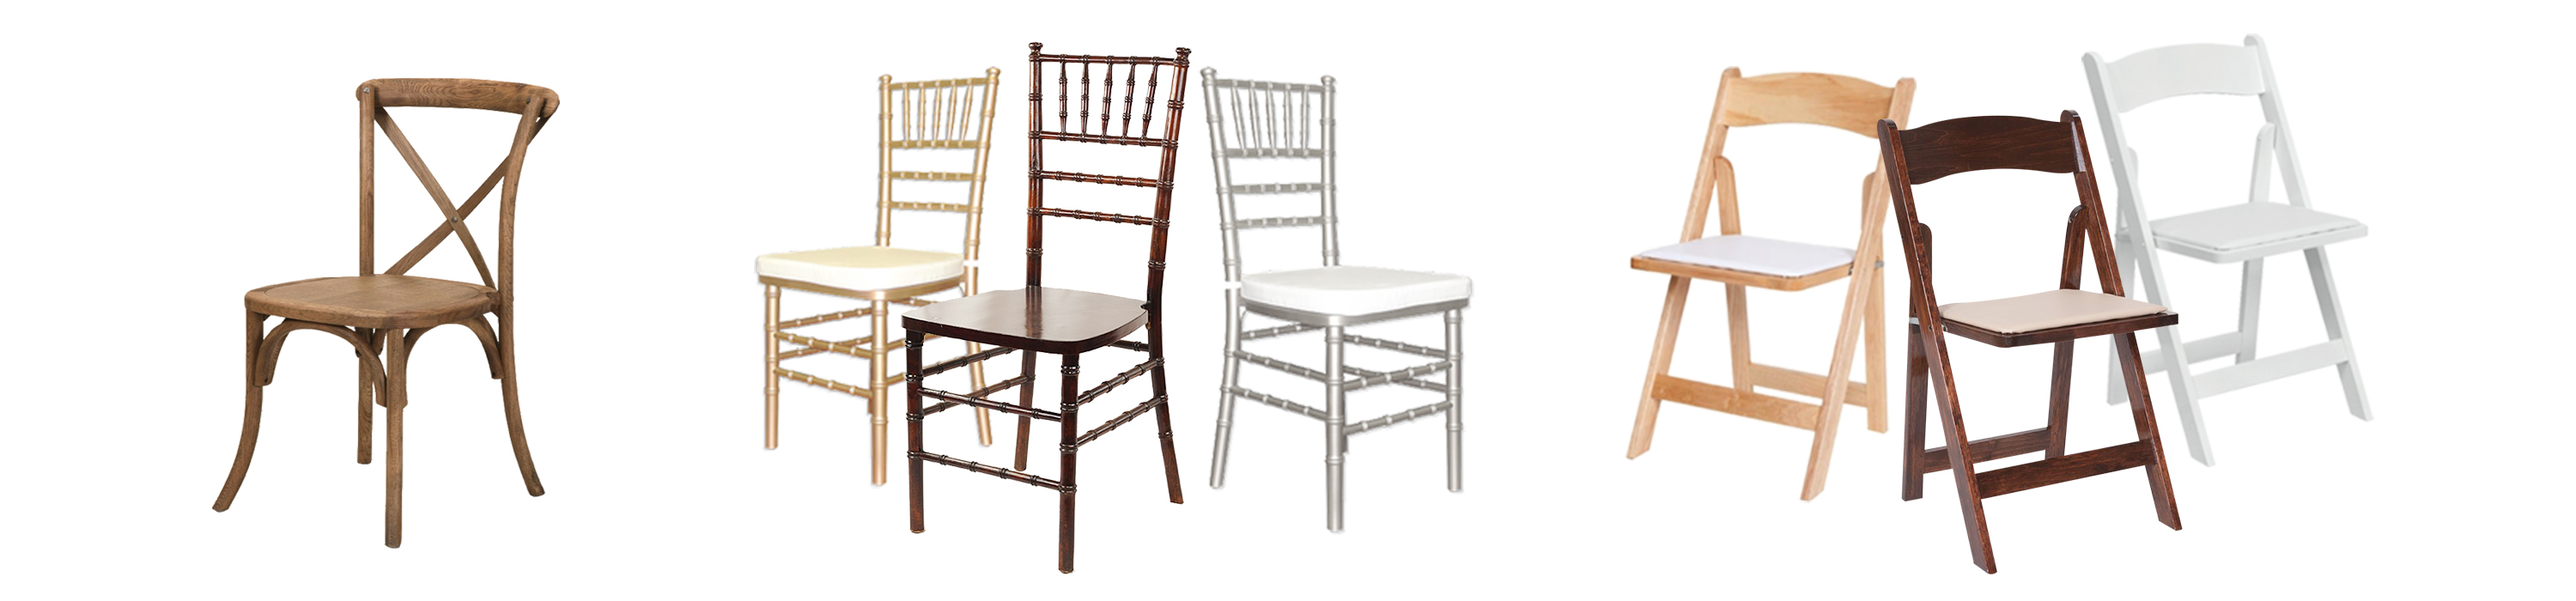 Chair Rentals by Oconee Events Georgia s Most Stylish Rental